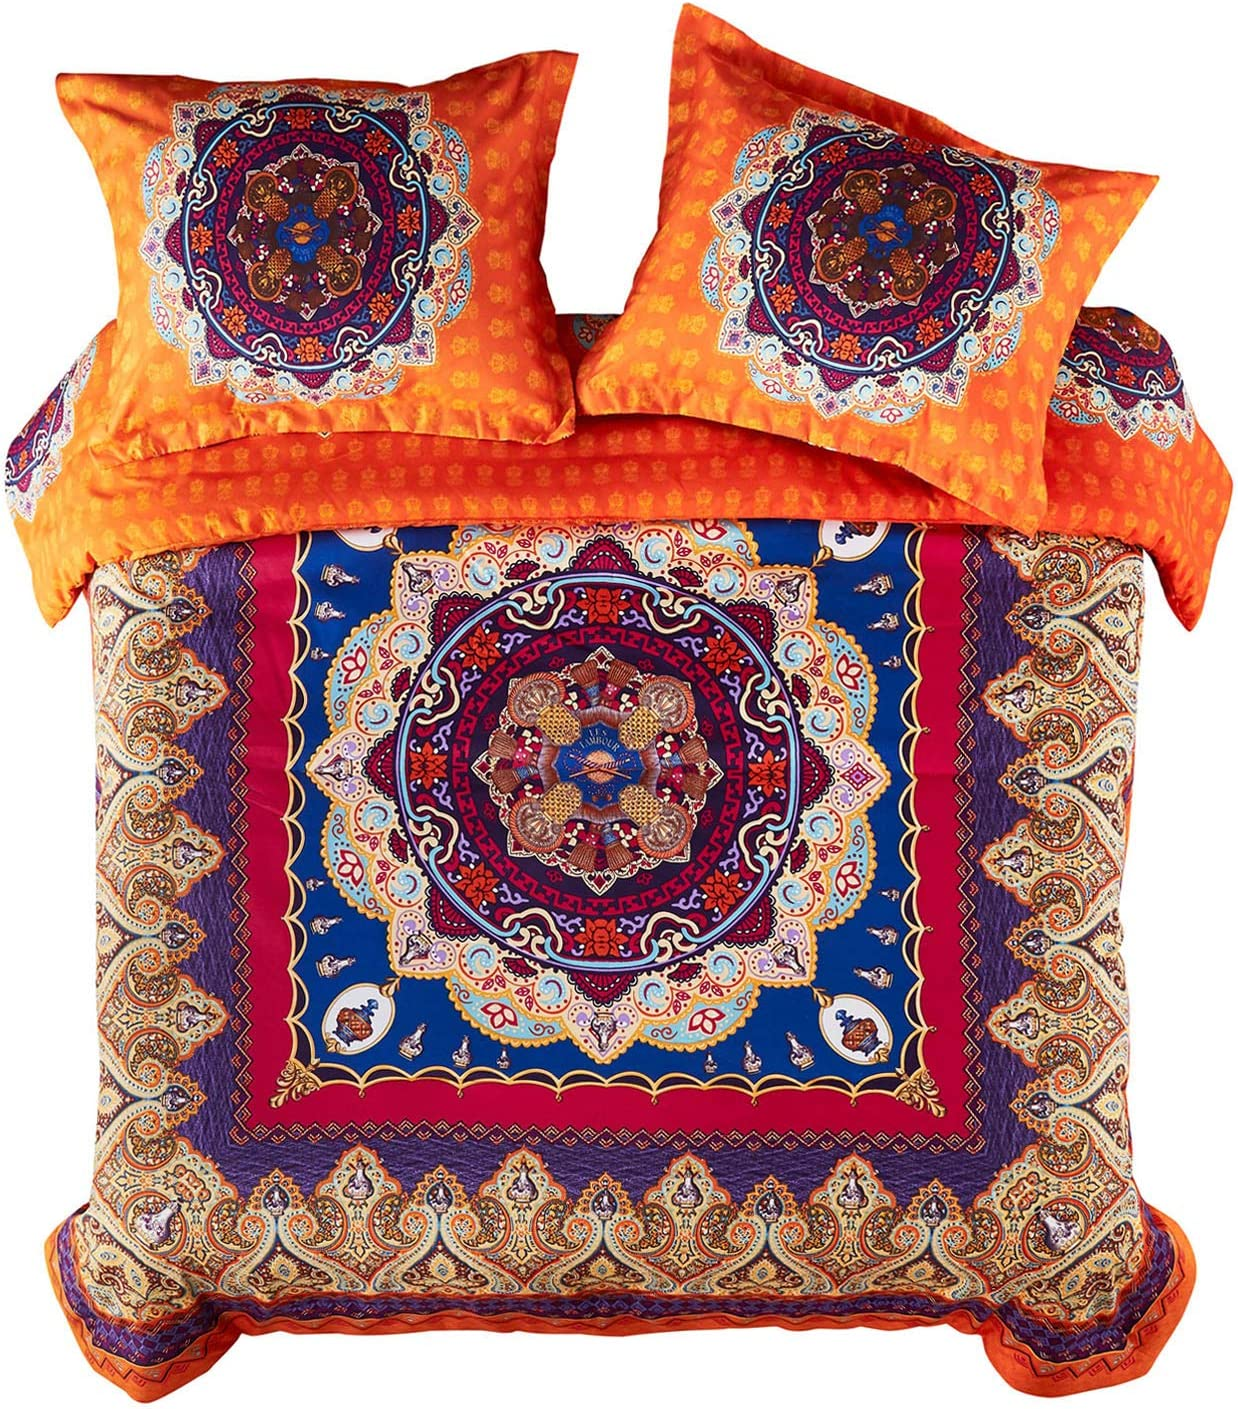 Wake In Cloud - Mandala Duvet Cover Set, Orange Bohemian Boho Chic Medallion Printed Soft Microfiber Bedding, with Zipper Closure (3pcs, Queen Size)